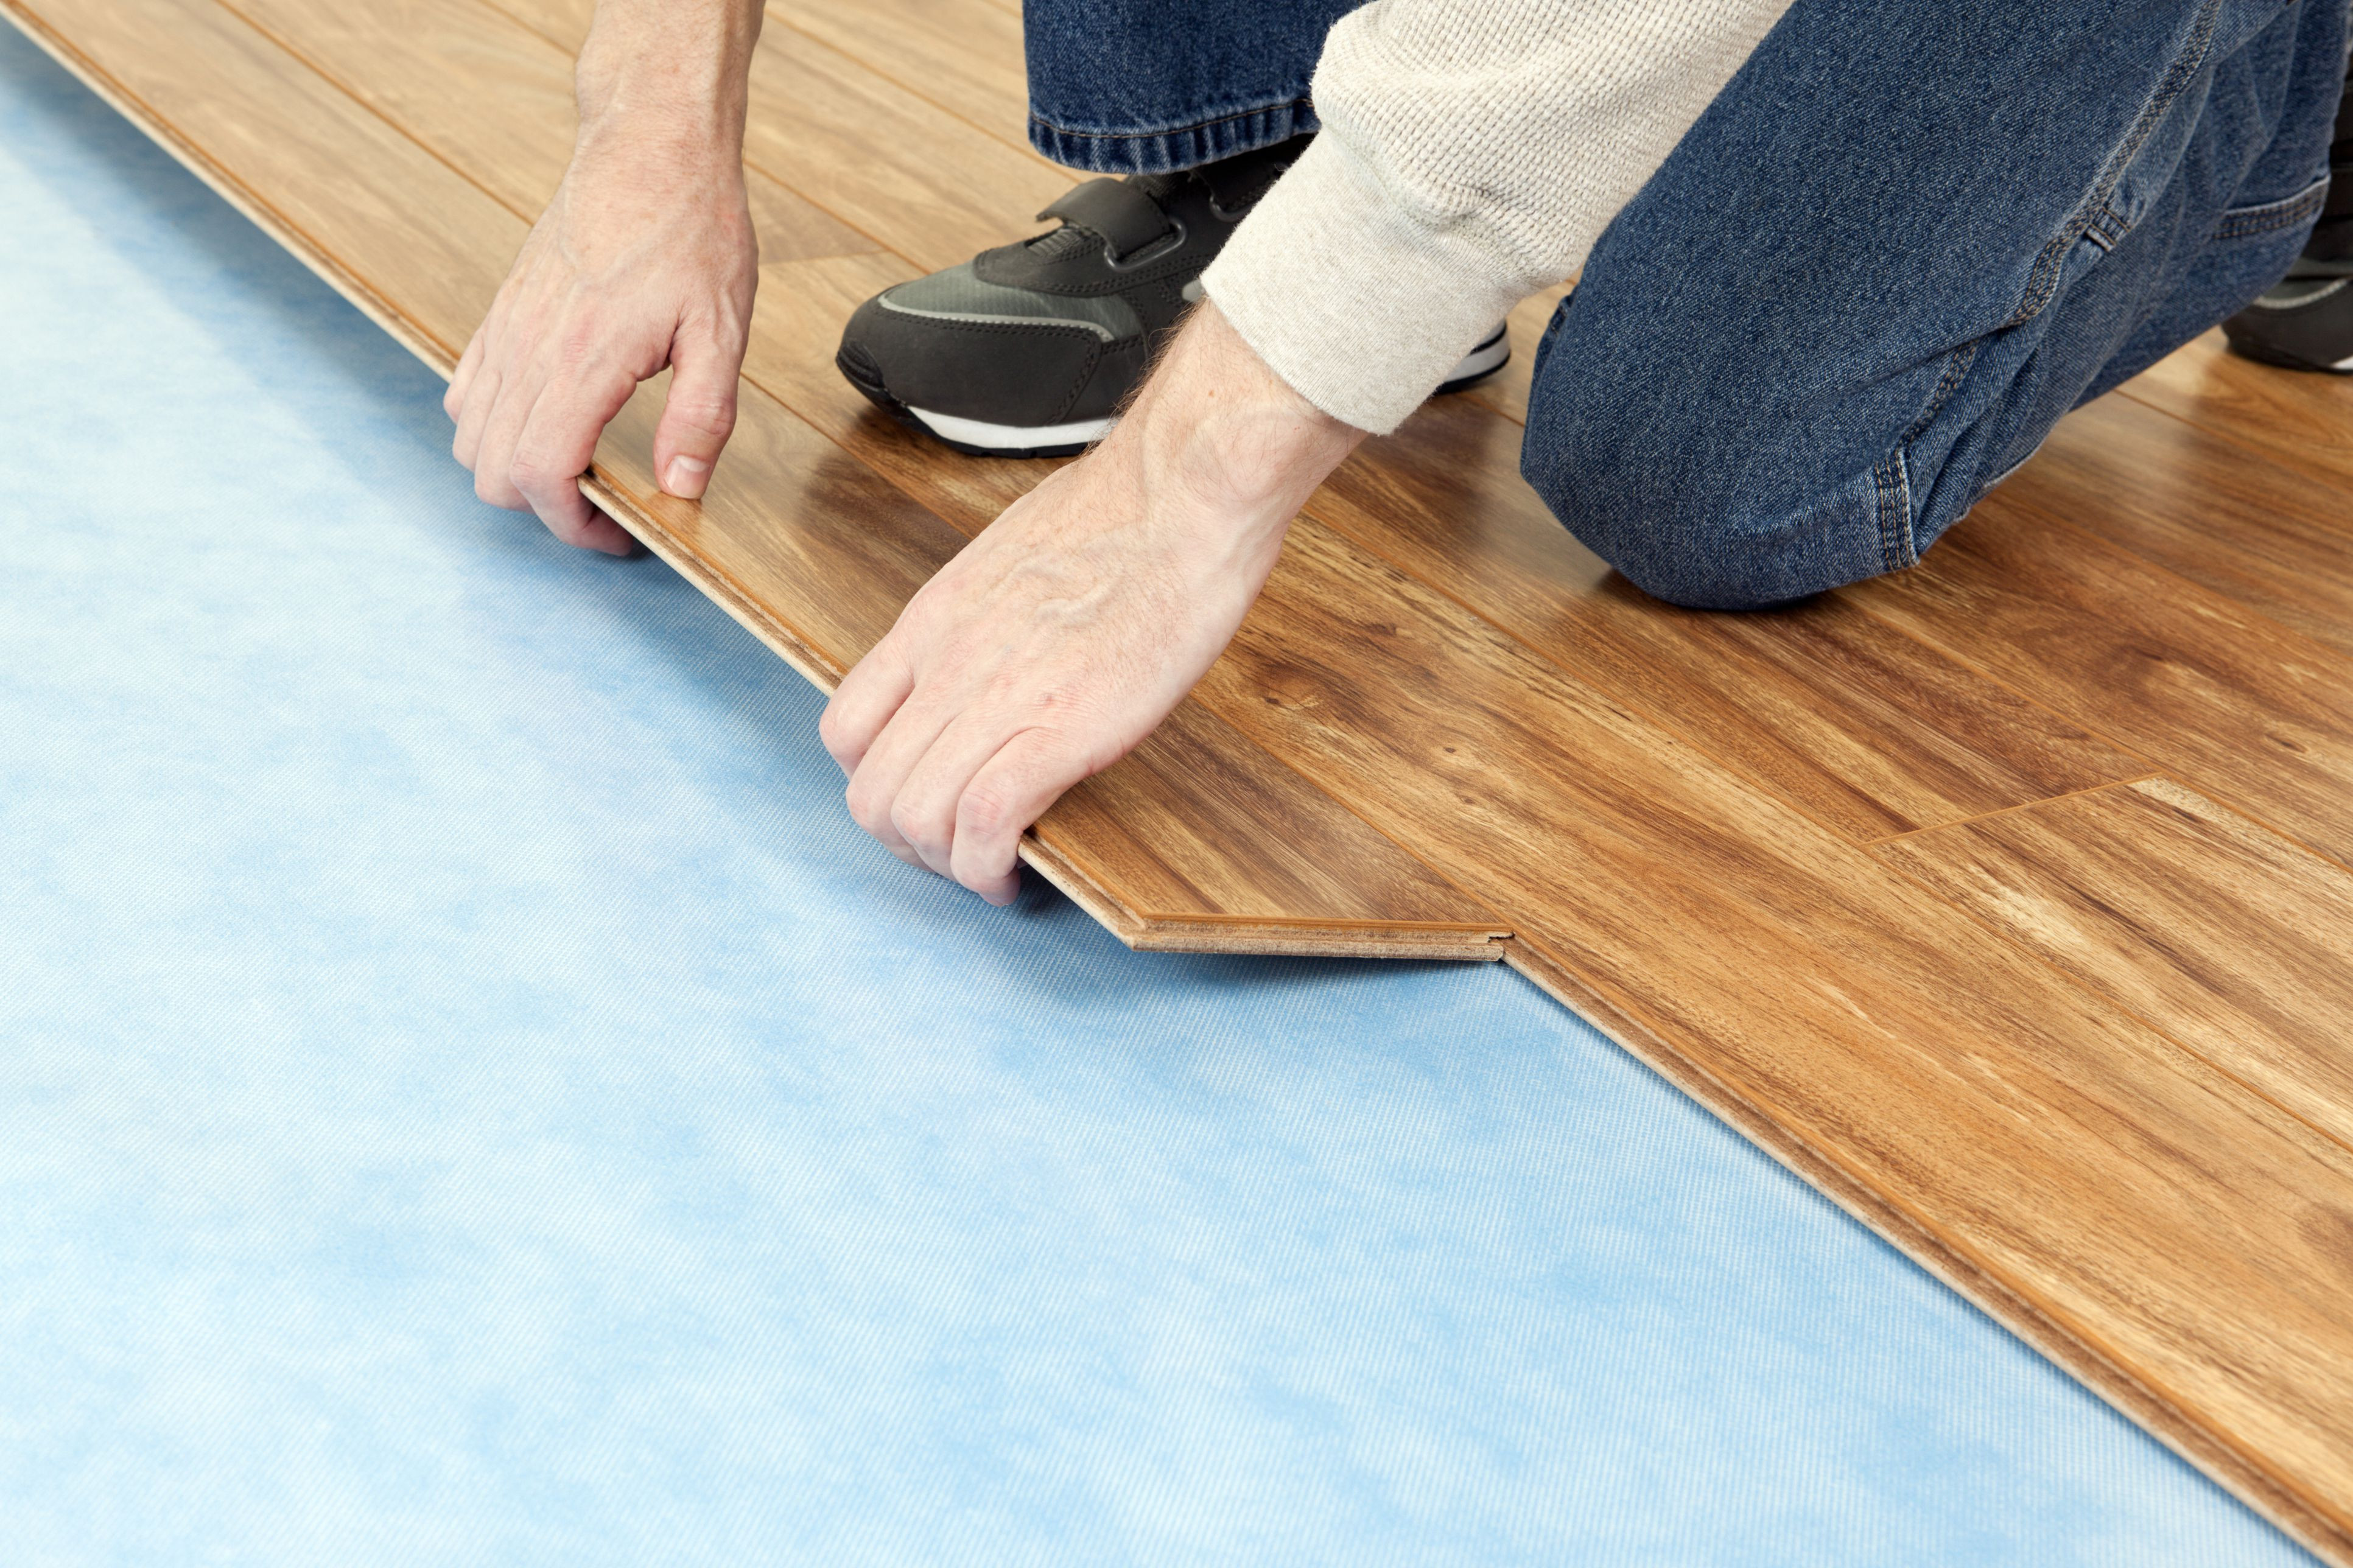 hardwood floor wax buffer of flooring underlayment the basics in new floor installation 185270632 582b722c3df78c6f6af0a8ab